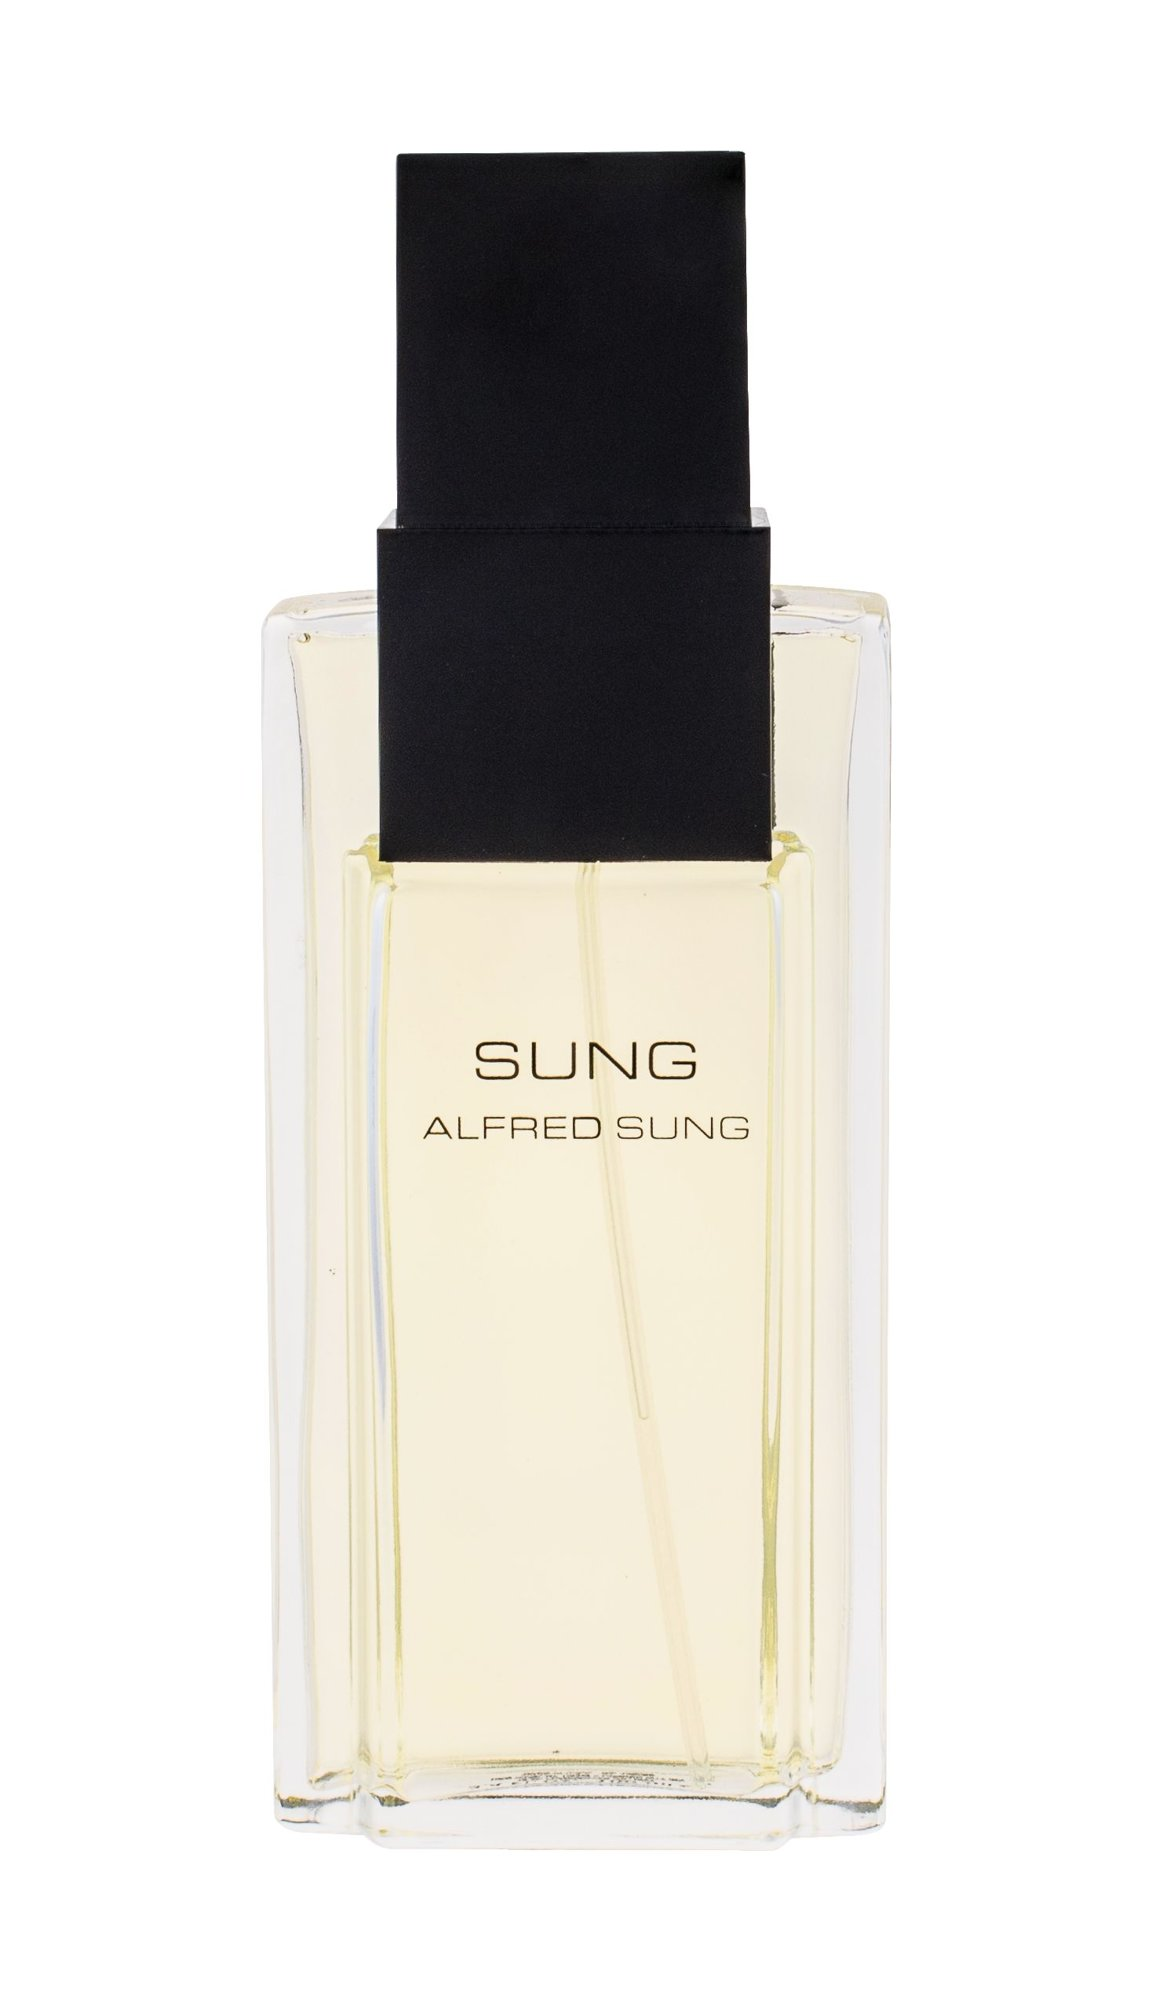 Alfred Sung Sung EDT 100ml